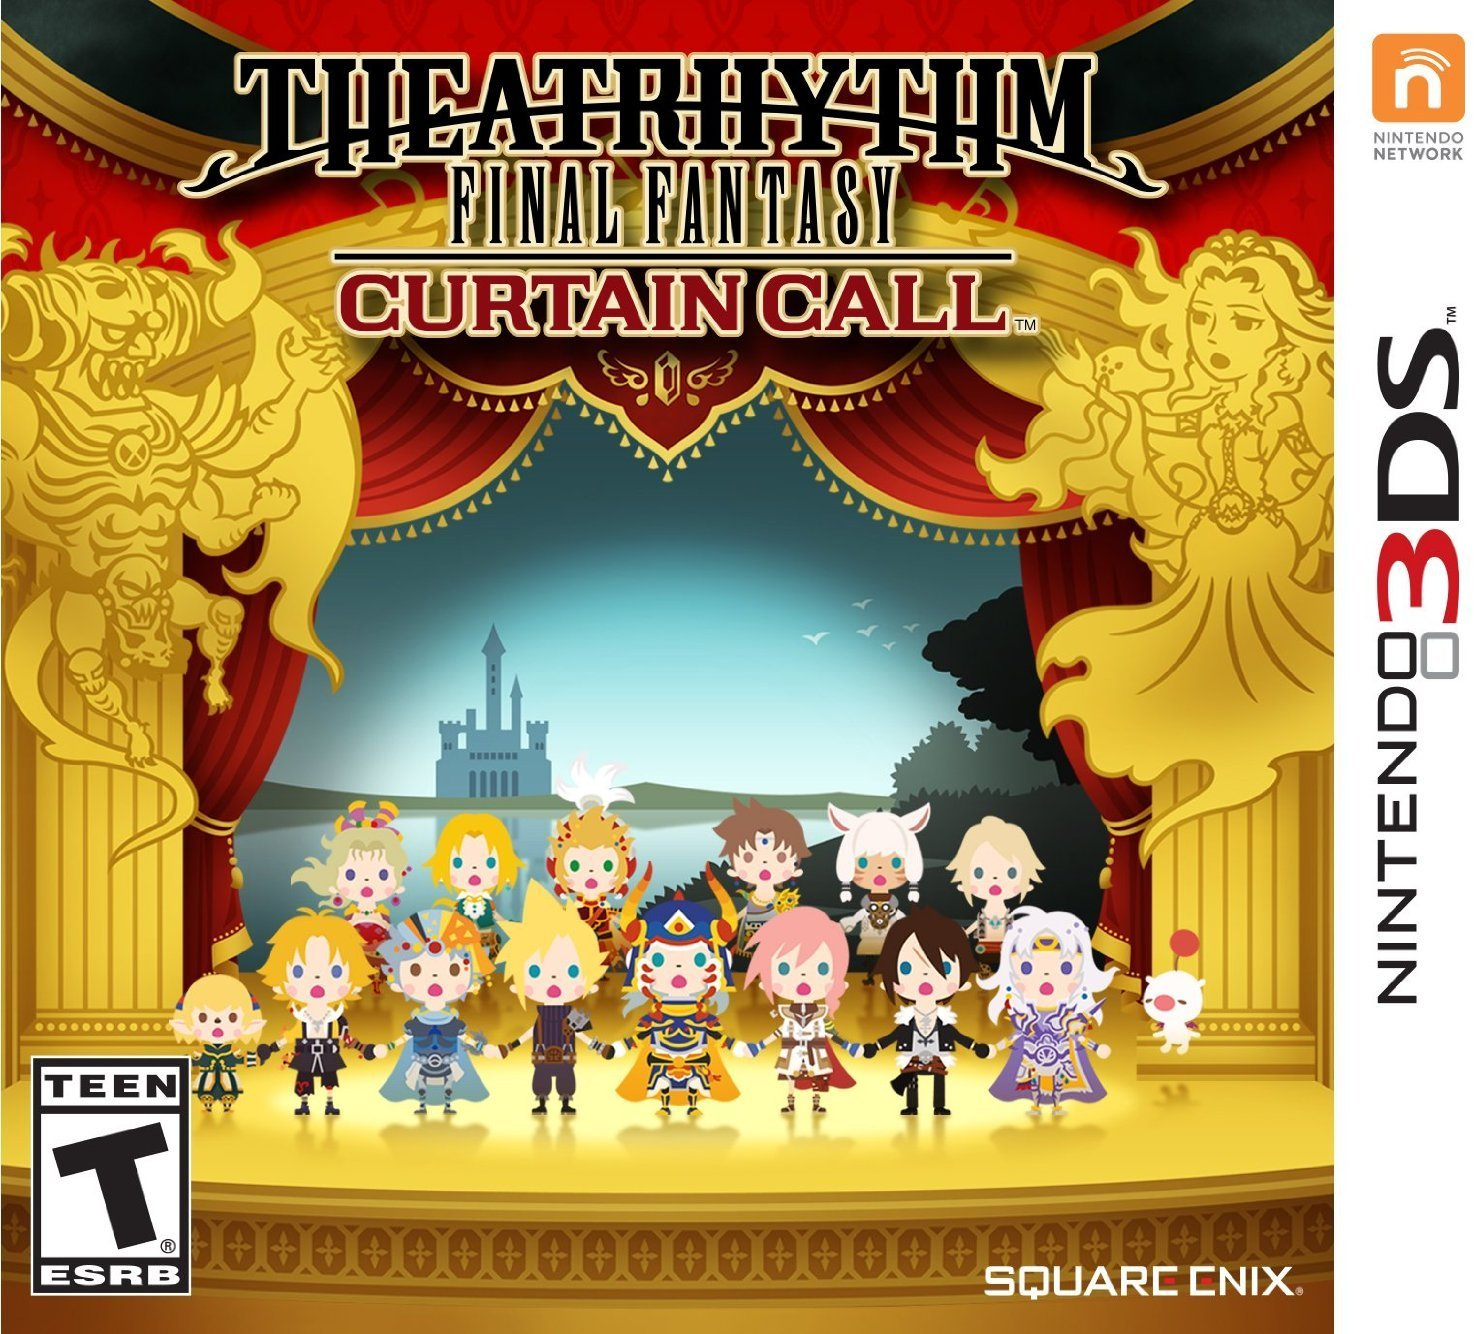 Theatrhythm Final Fantasy: Curtain Call - Nintendo 3DS, New content takes center stage: Includes songs and characters from recent releases including LIGHTNING.., By Square Enix